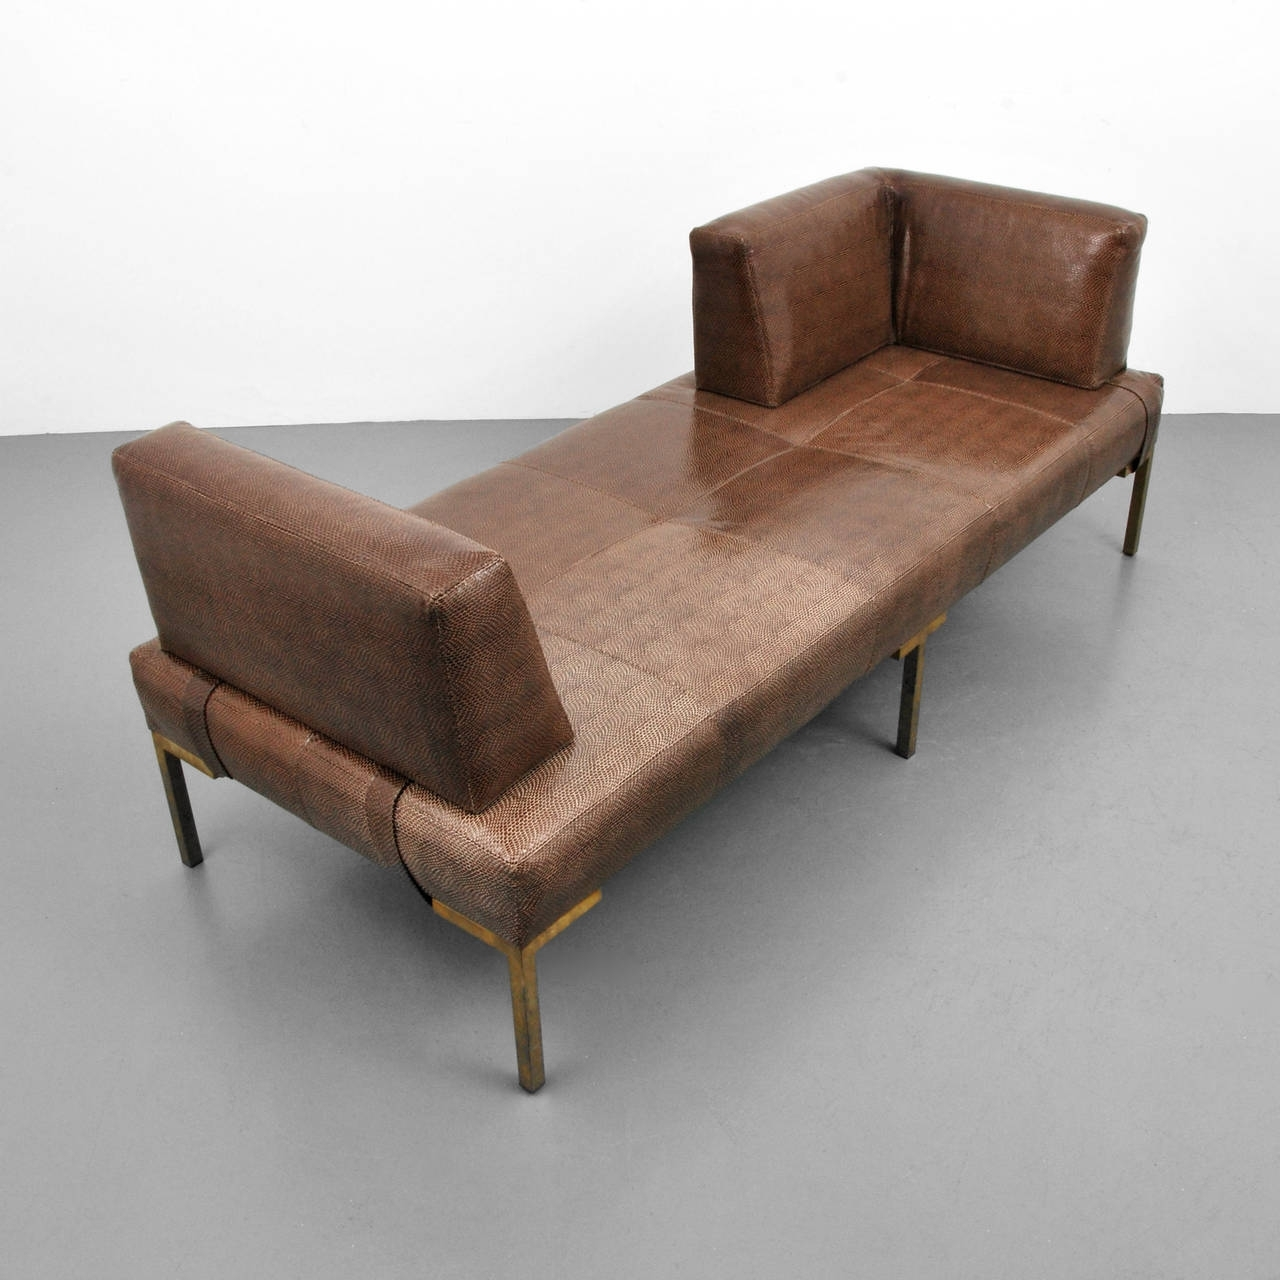 2017 Luigi Gentile Leather Daybeds Or Chaise Lounges, Two Available Pertaining To Modern Chaises (View 8 of 15)